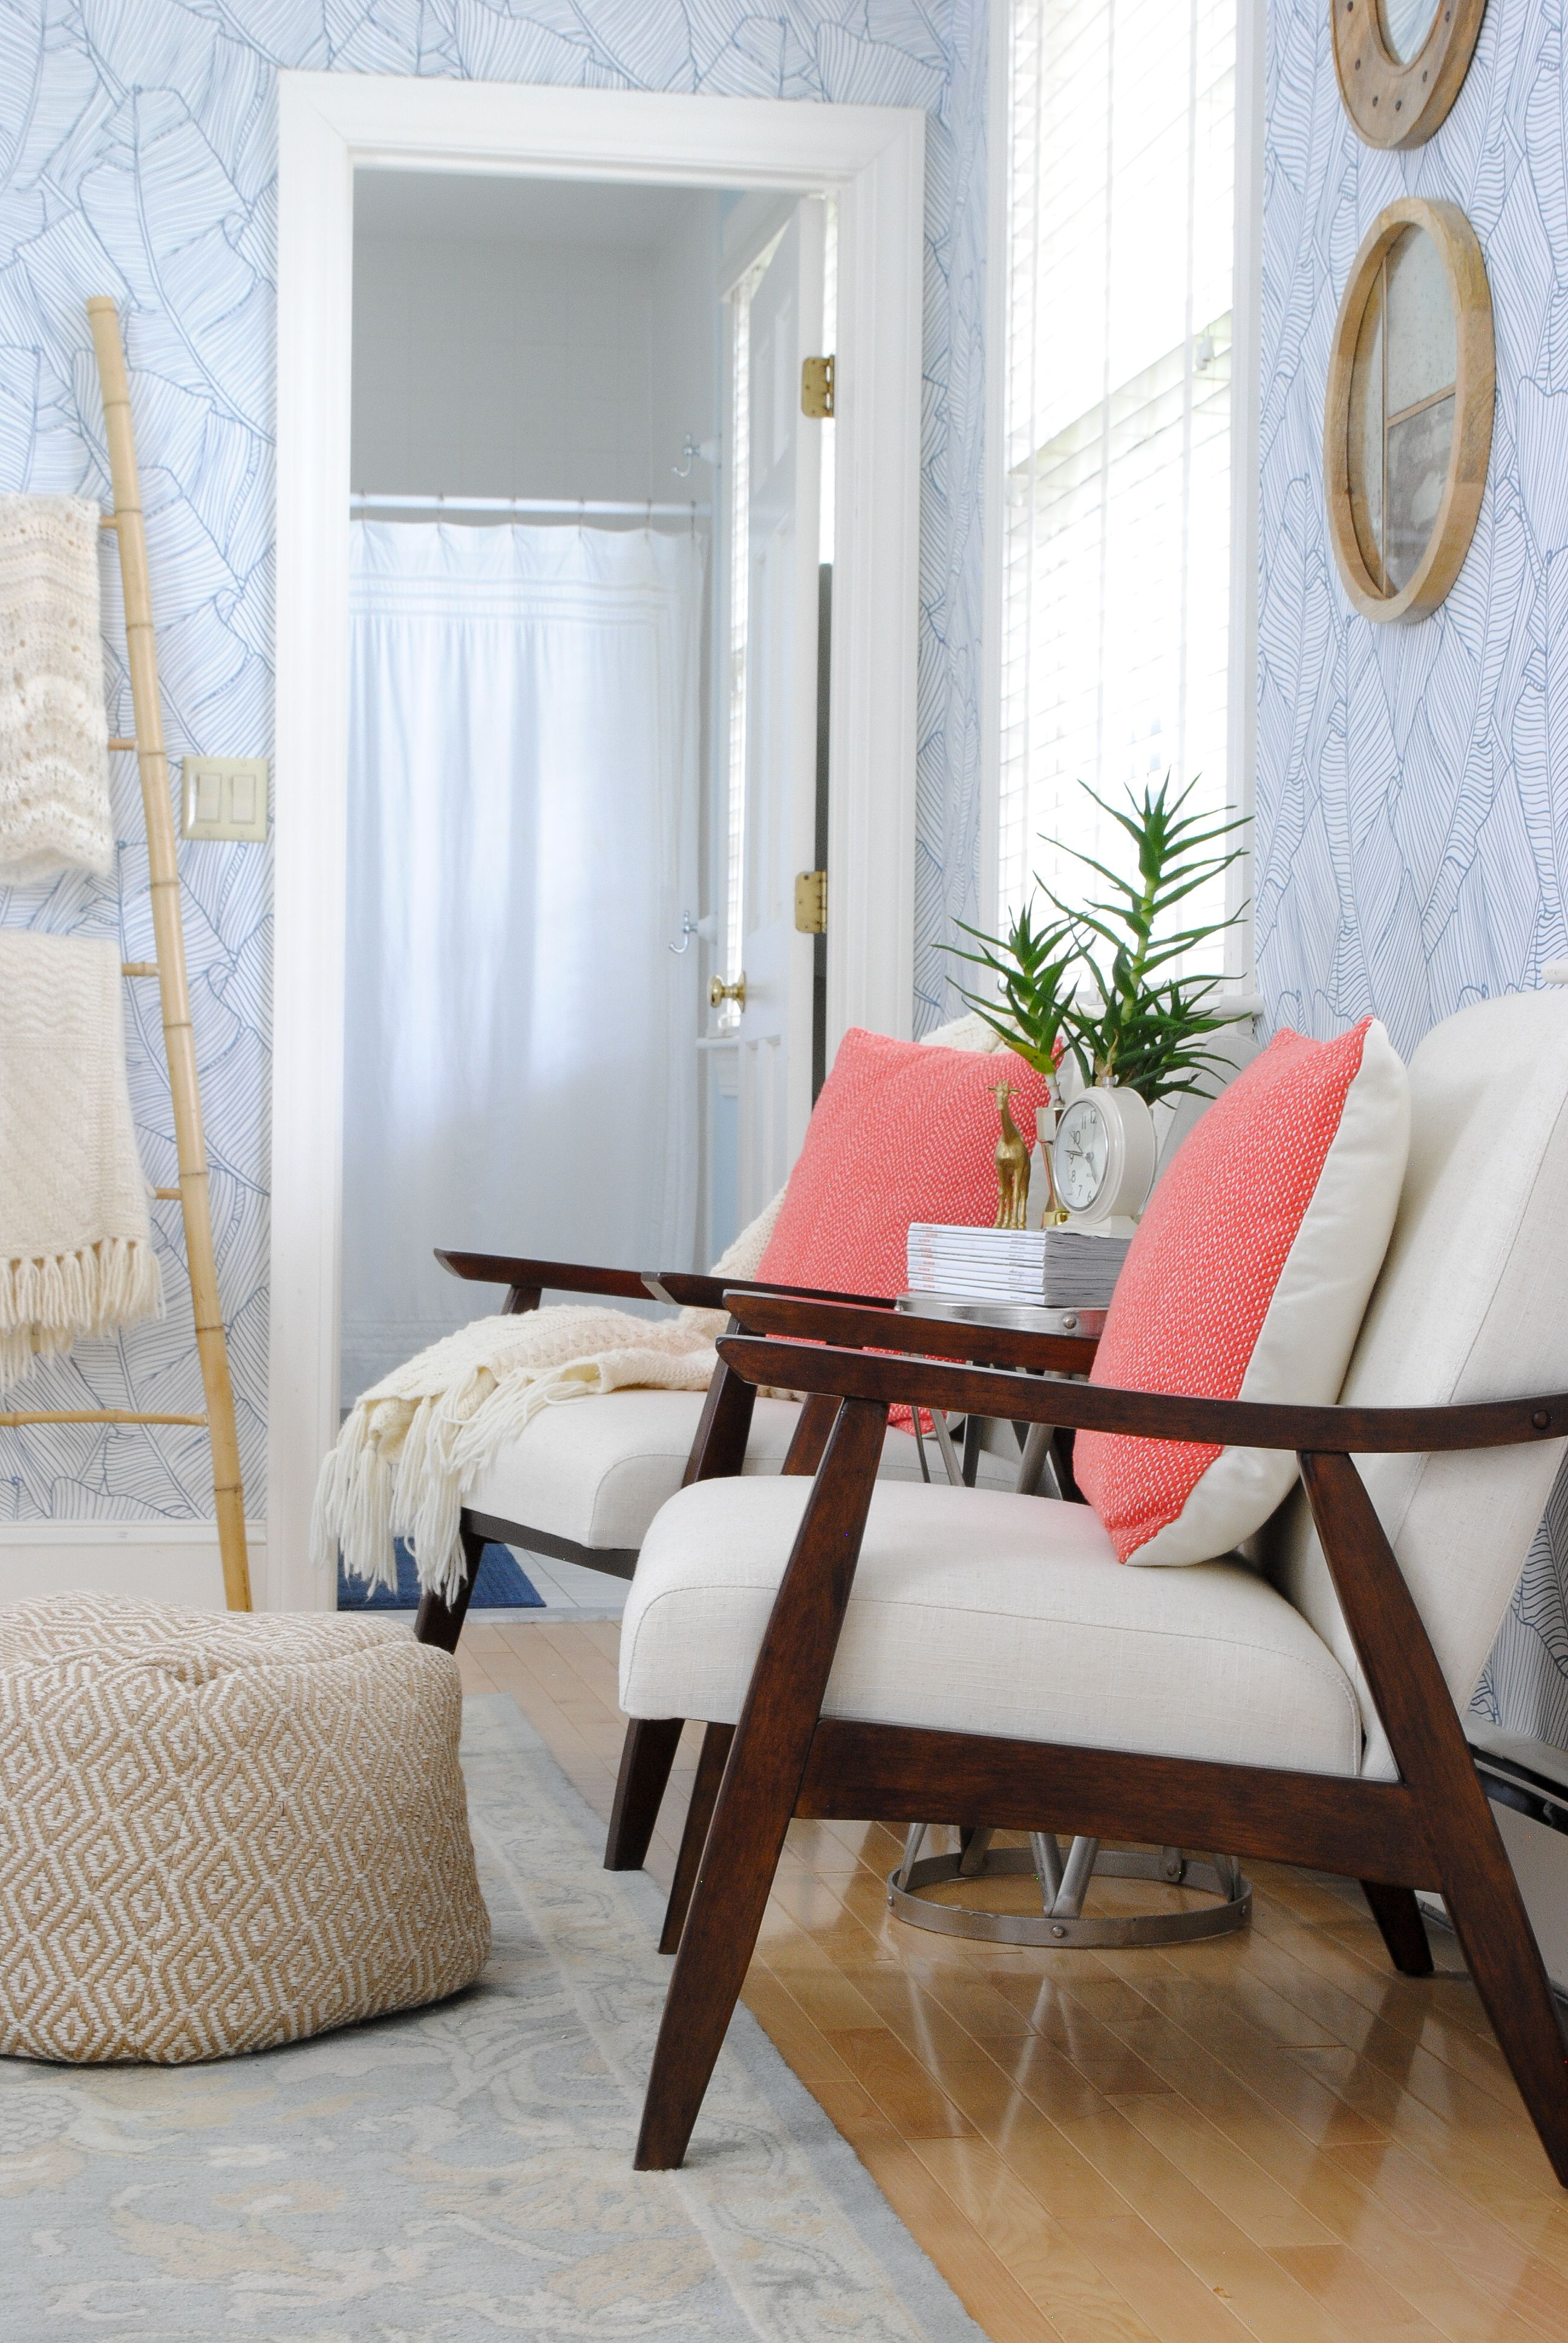 Mid Century Modern Chairs In A Guest Bedroom   Perfect For A Compact But  Cozy